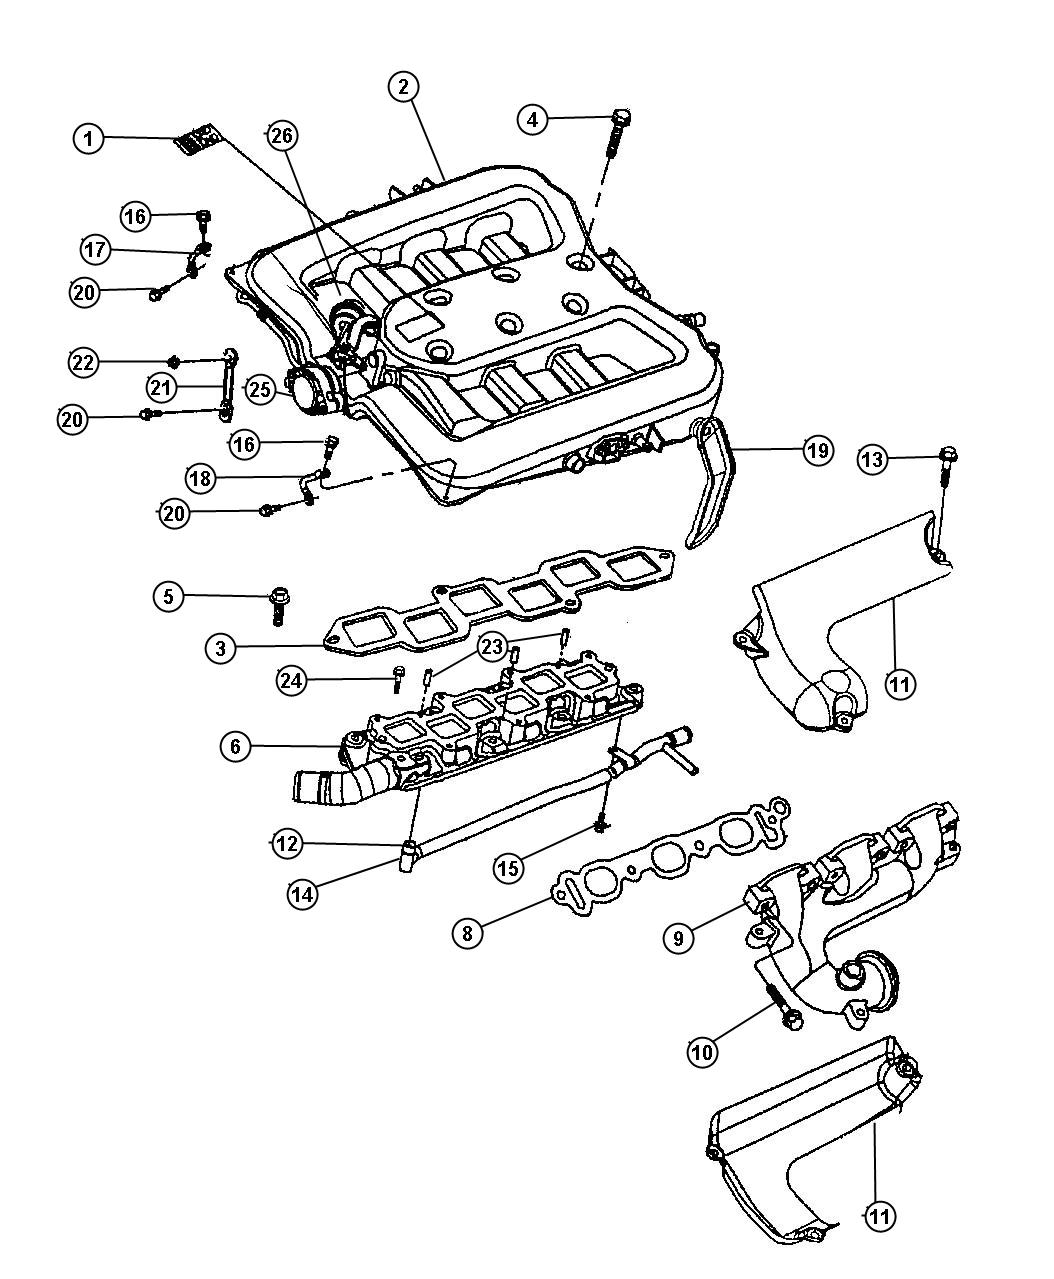 Air Intake Diagram For 1997 Dodge Intrepid, Air, Free